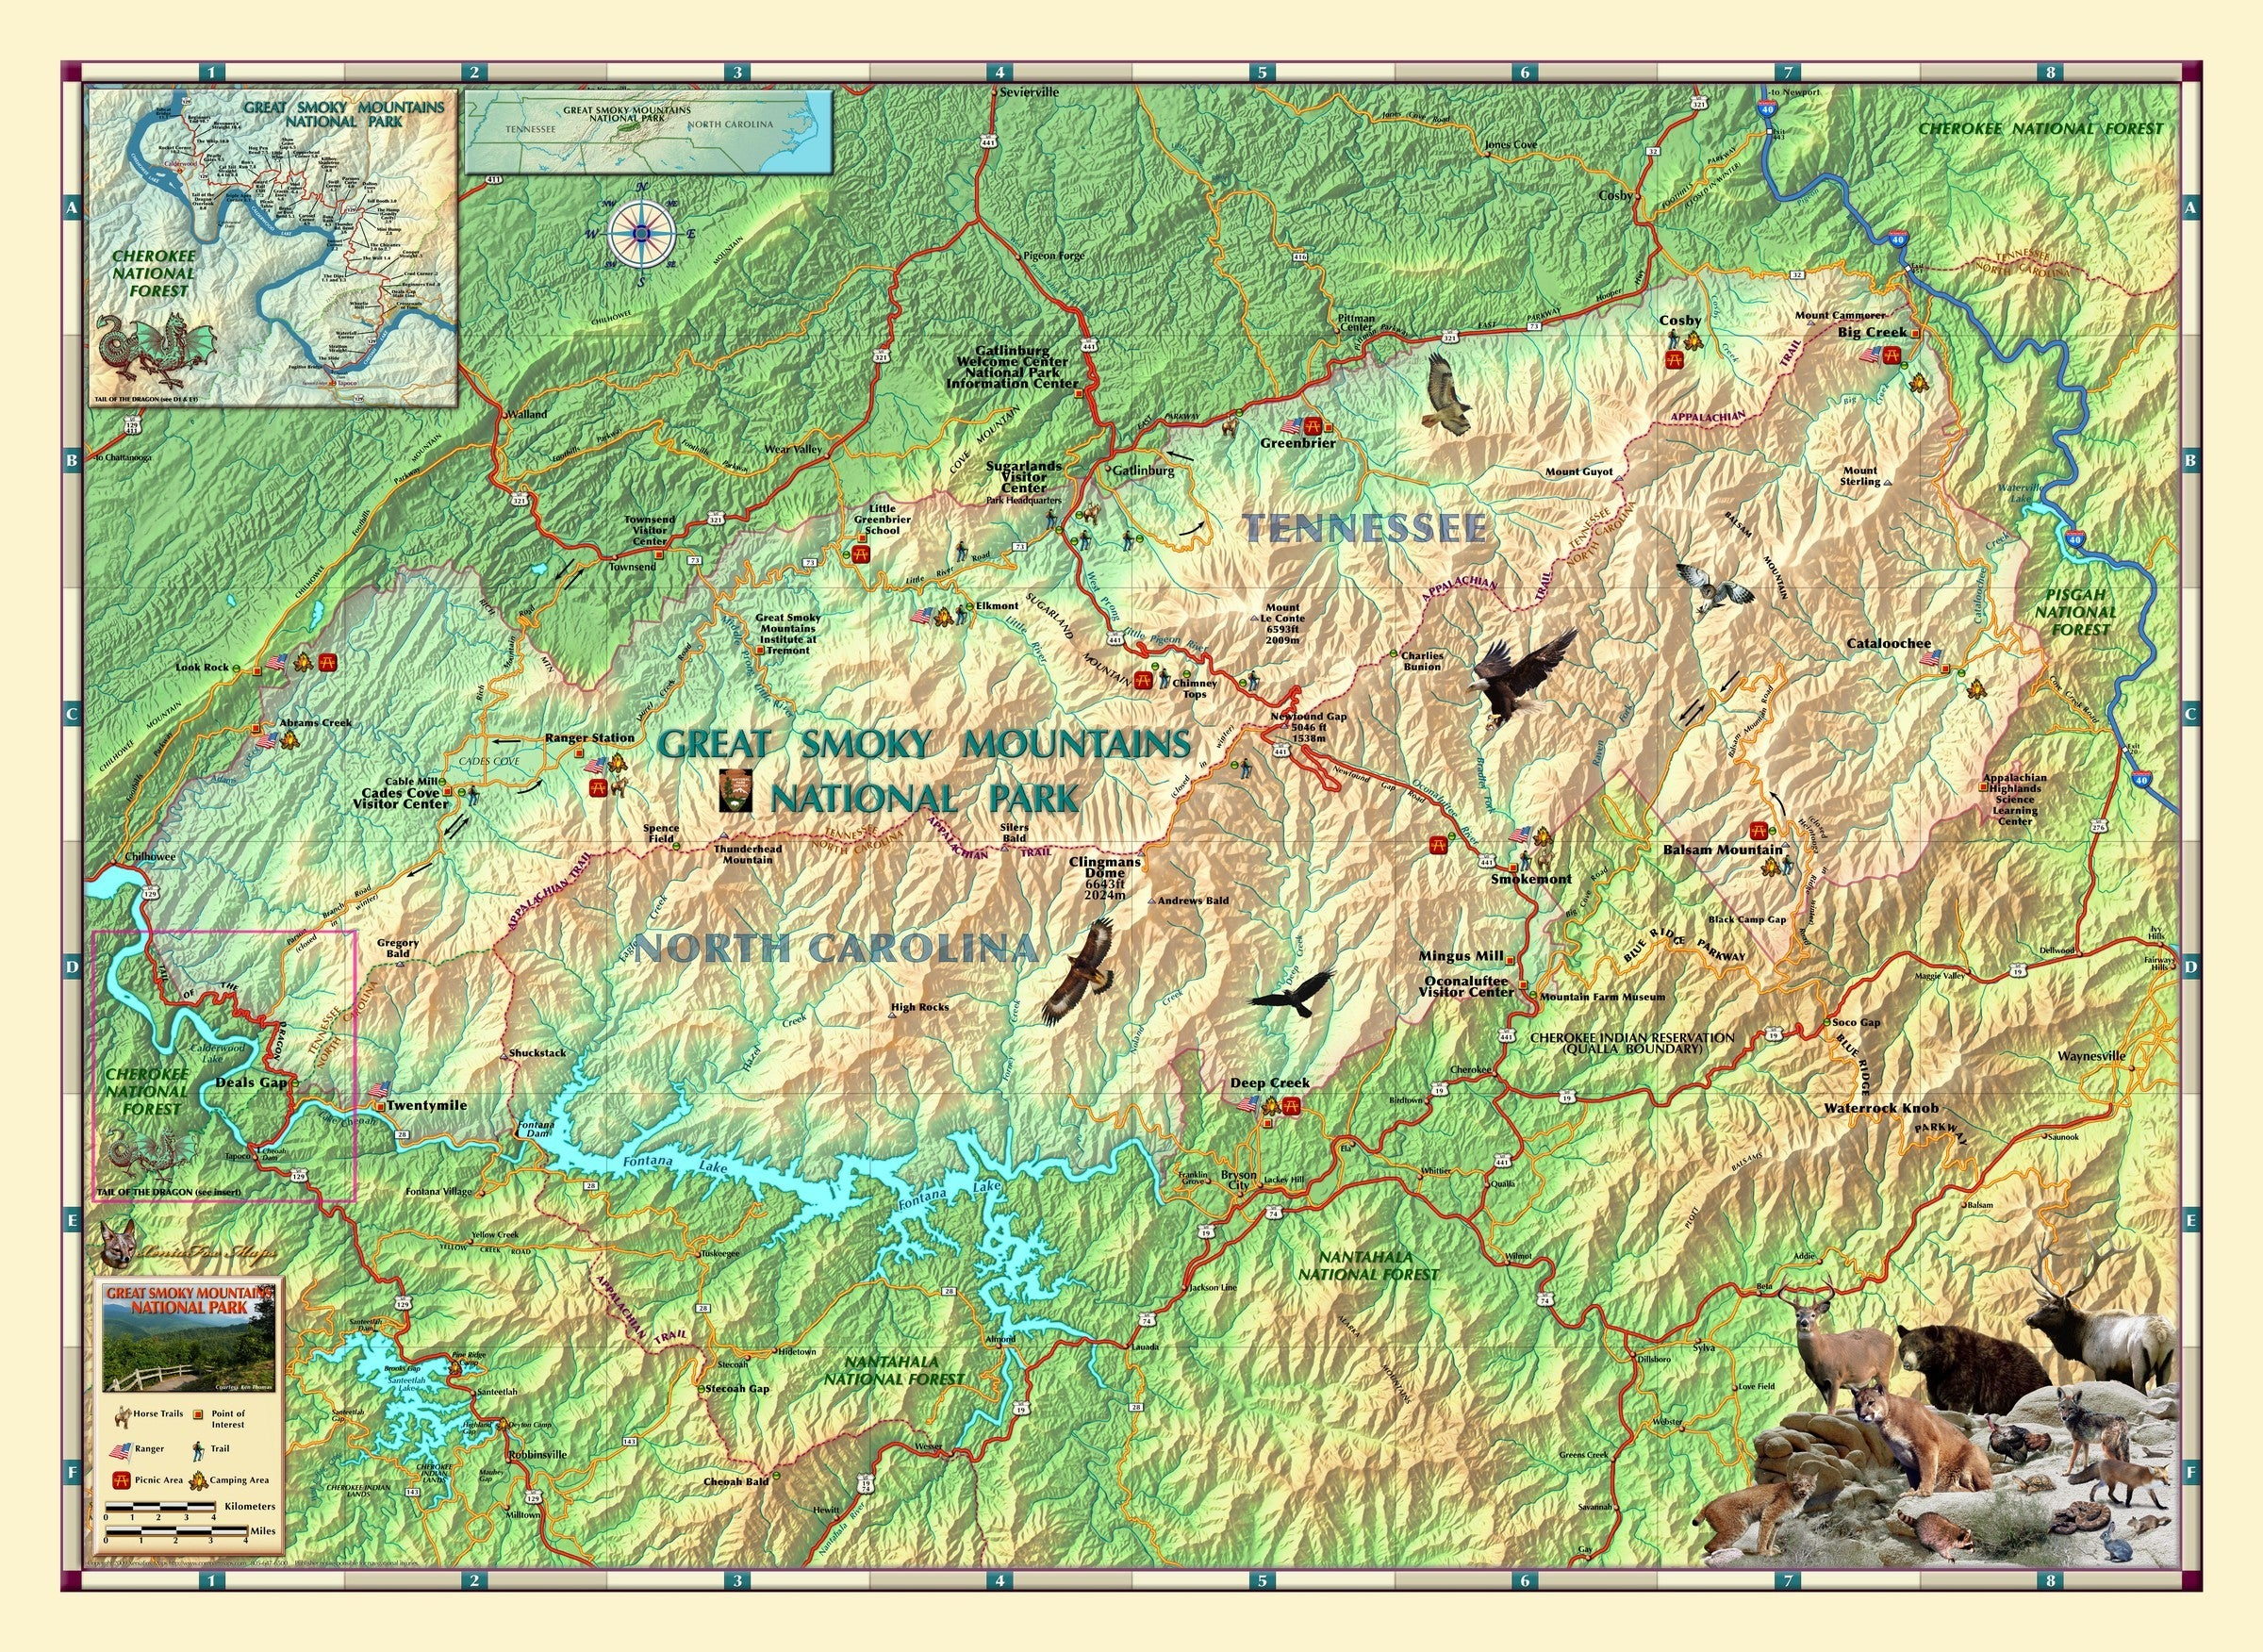 Great Smoky Mountains National Park Wall Map on map of the ozarks, map of great smoky mountains in tennessee, map of the grand canyon, map of the sequoia national park, map of the cumberland plateau, map of the adirondack park, map of the university of virginia, map of the smoky mtns,